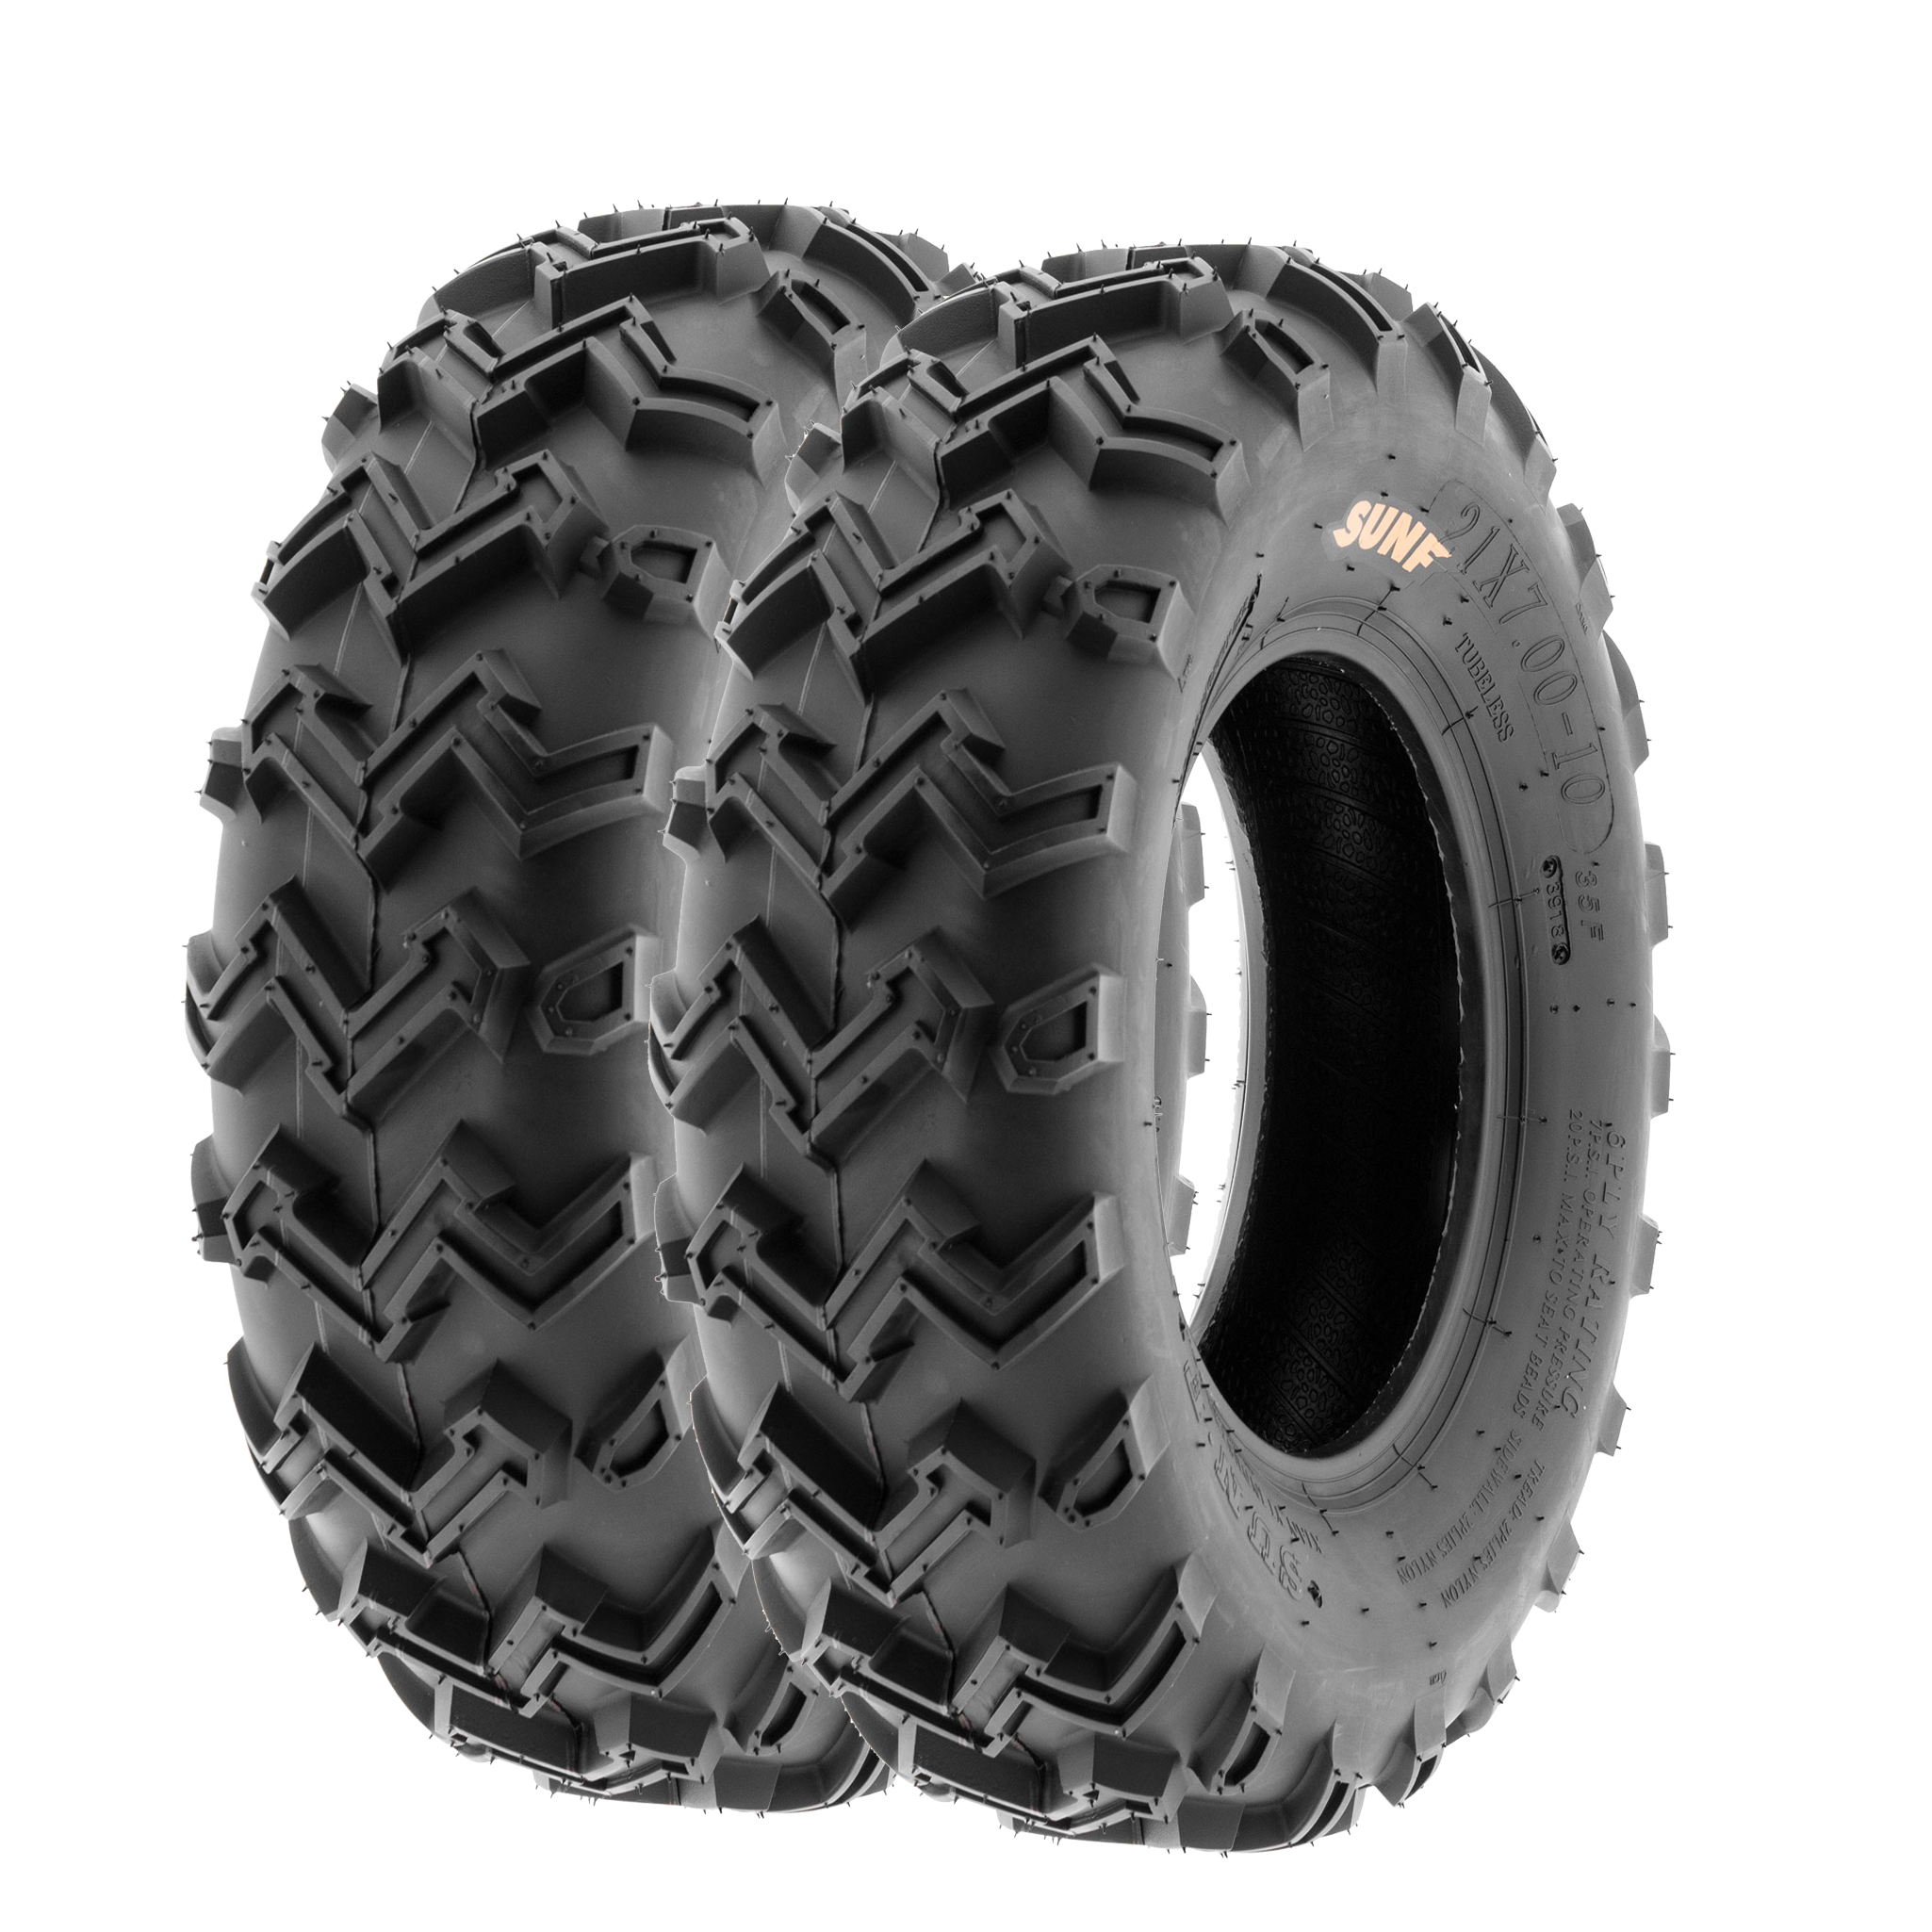 Details about SunF 21x7-10 ATV UTV Tires 21x7x10 All Terrain Tubeless 6 PR  A001 [Set of 2]